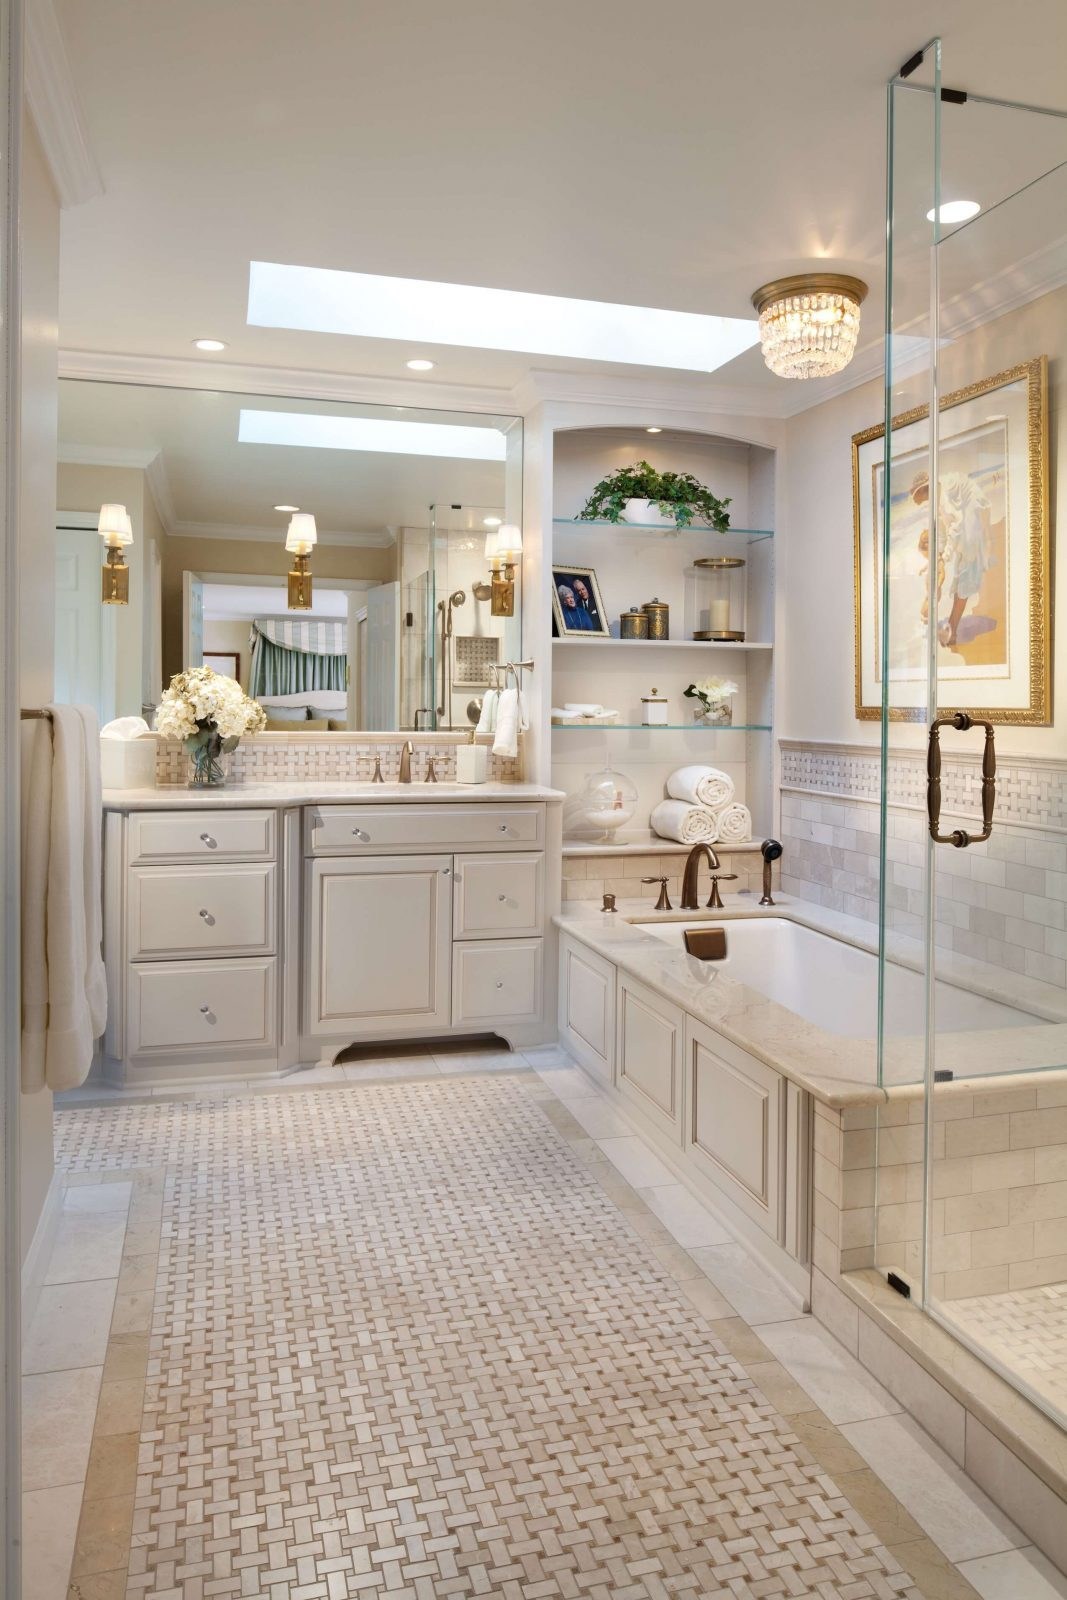 Master bathroom in shades of cream with built in shelves above the bathtub, glass shower, small crystal chandelier